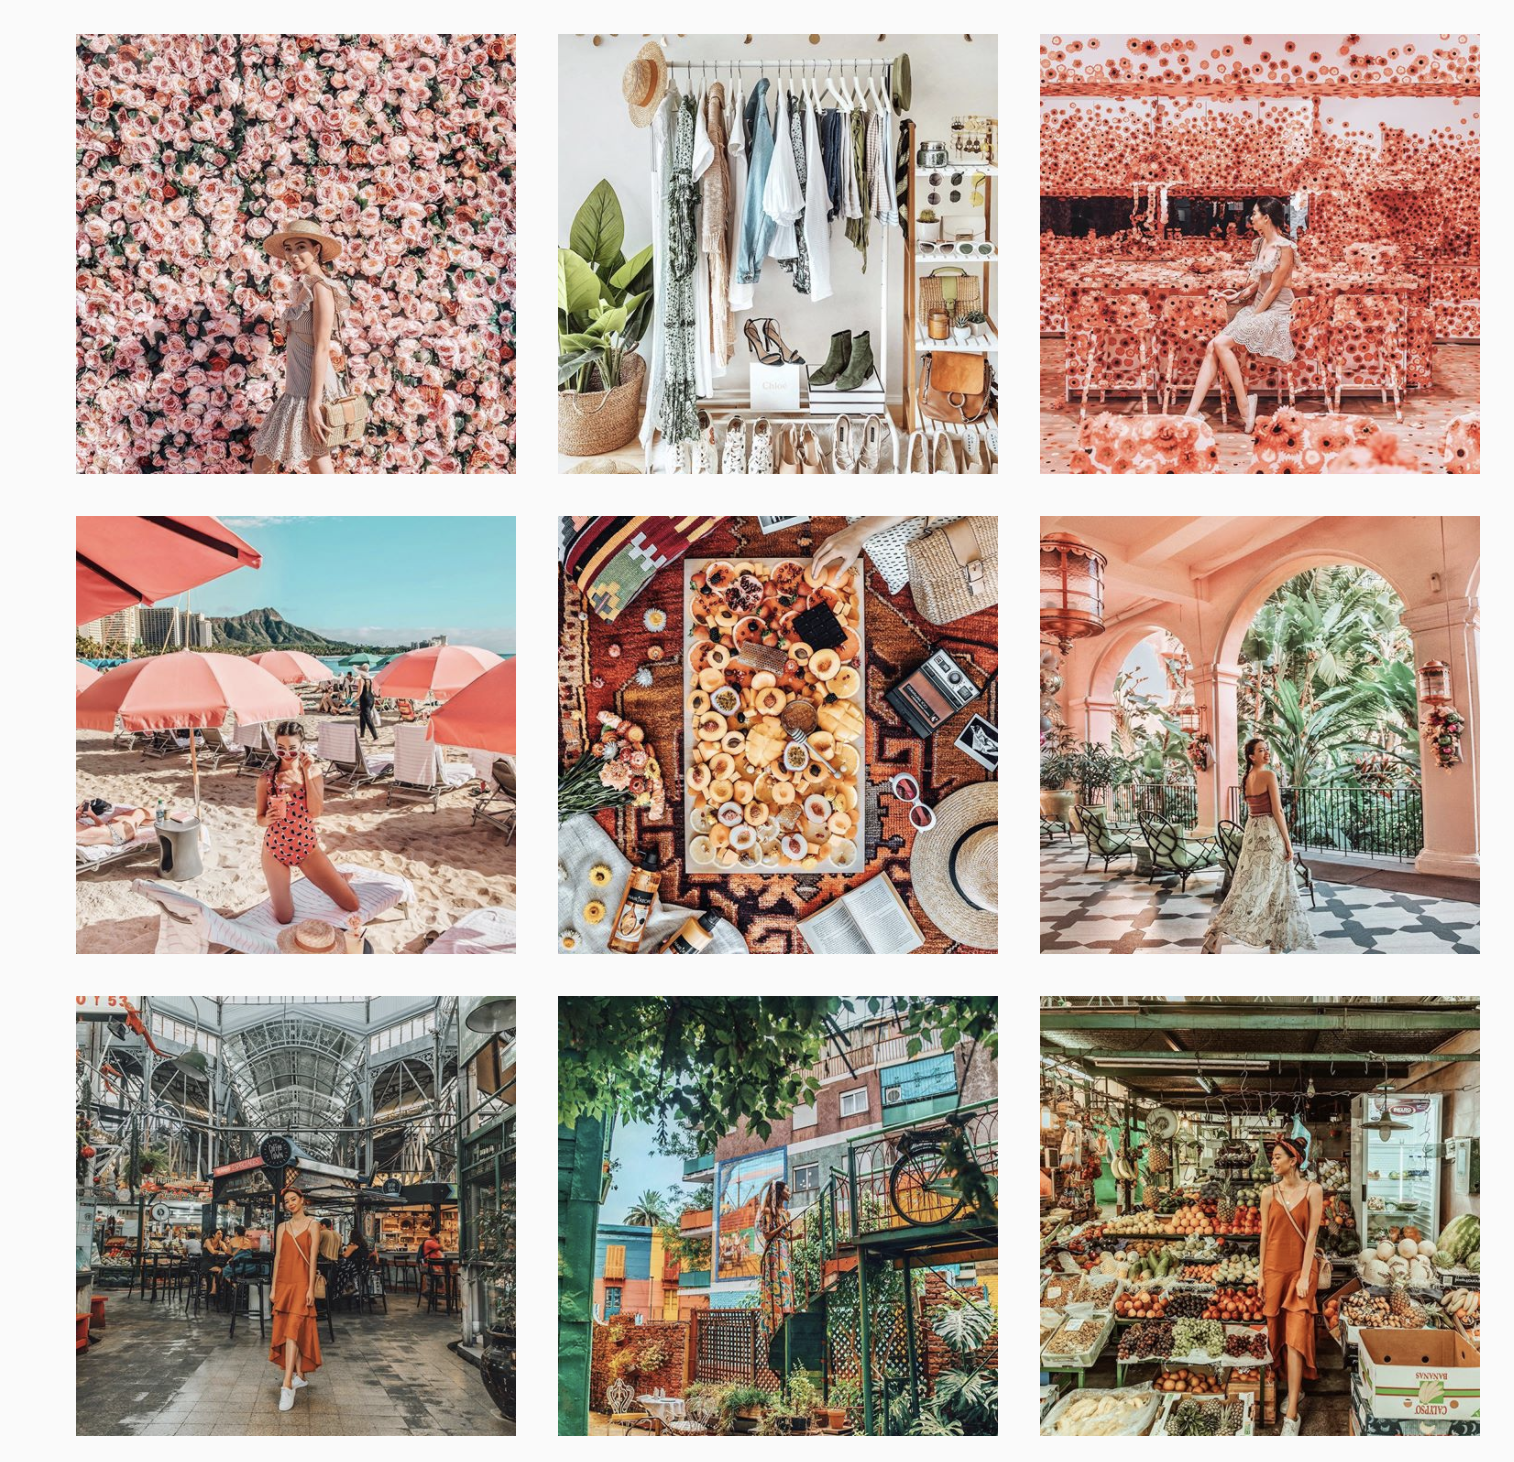 Instagram Feed Ideas - Schedugram